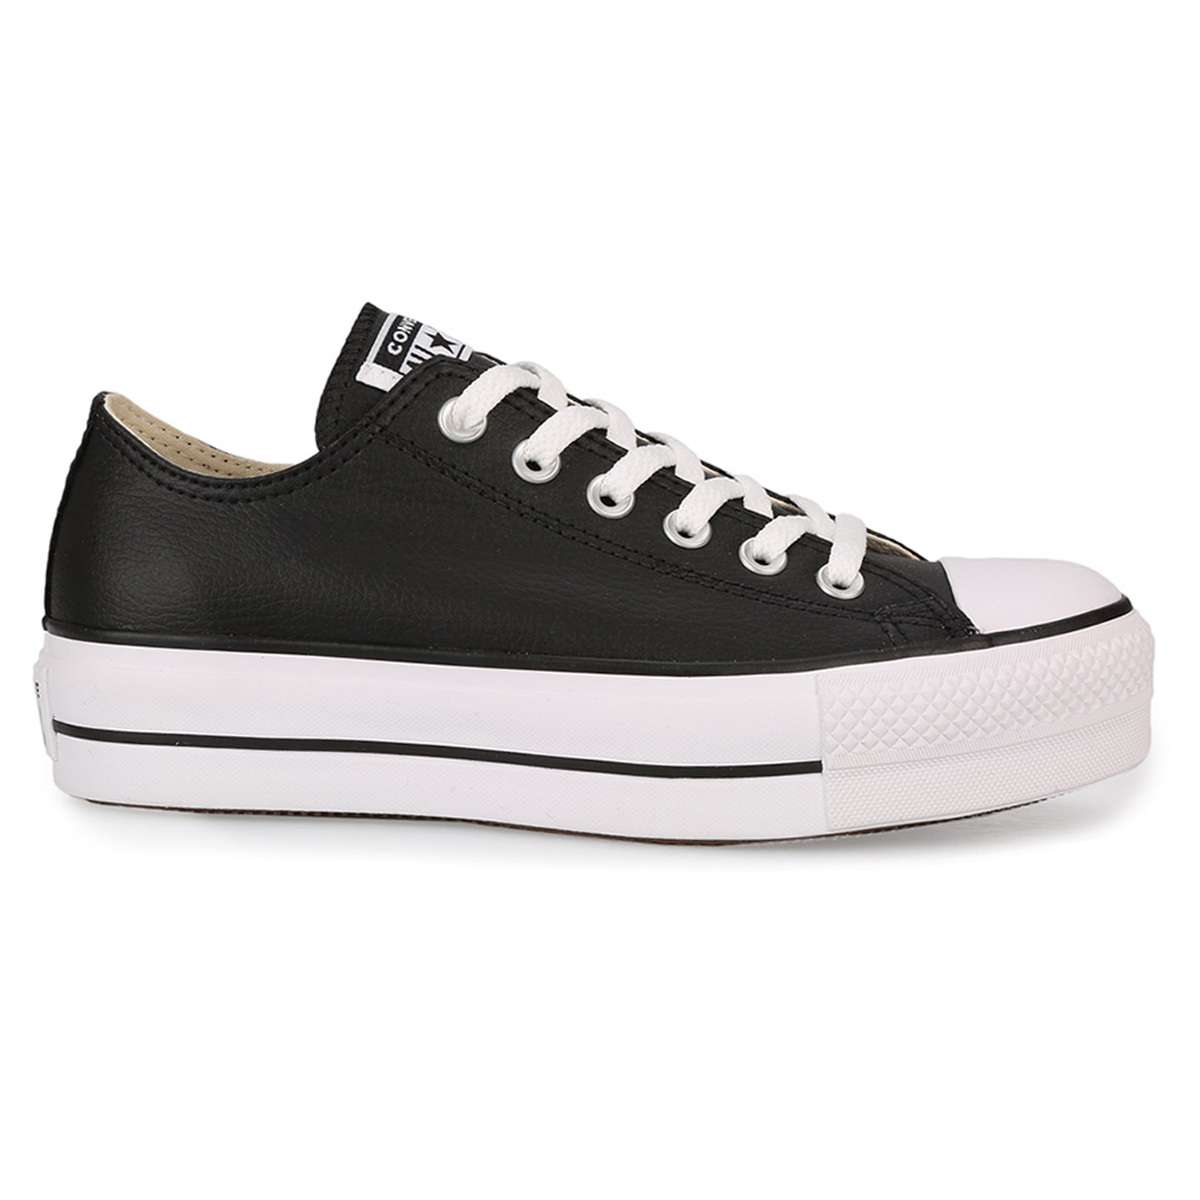 Zapatillas Converse Chuck Taylor,  image number null